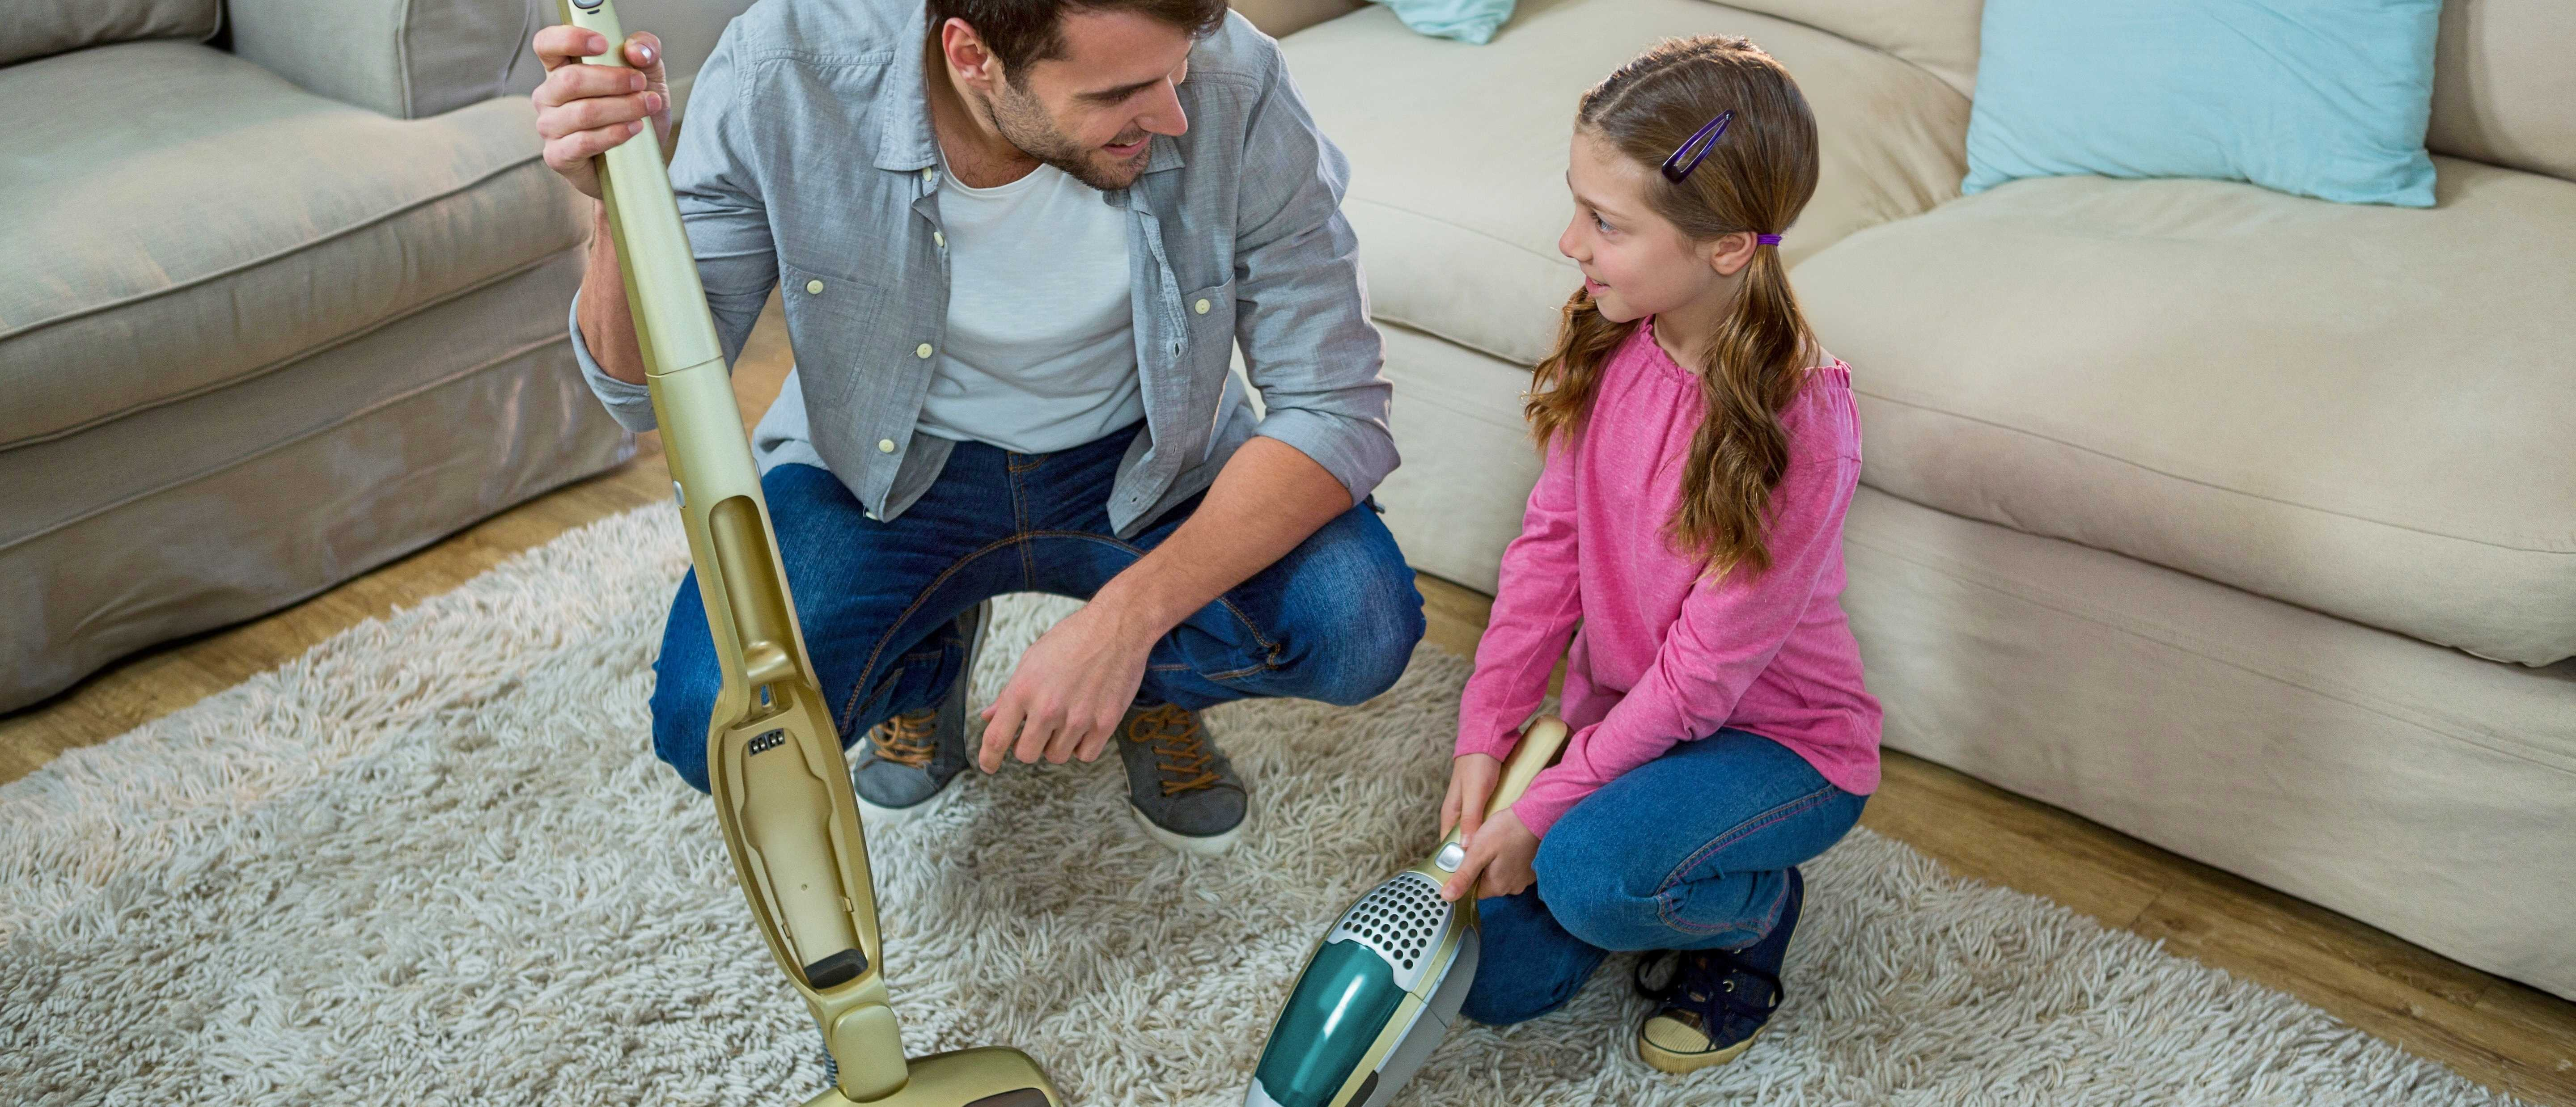 Vacuuming Tips & Tricks - Professional Carpet Cleaning Springfield Missouri